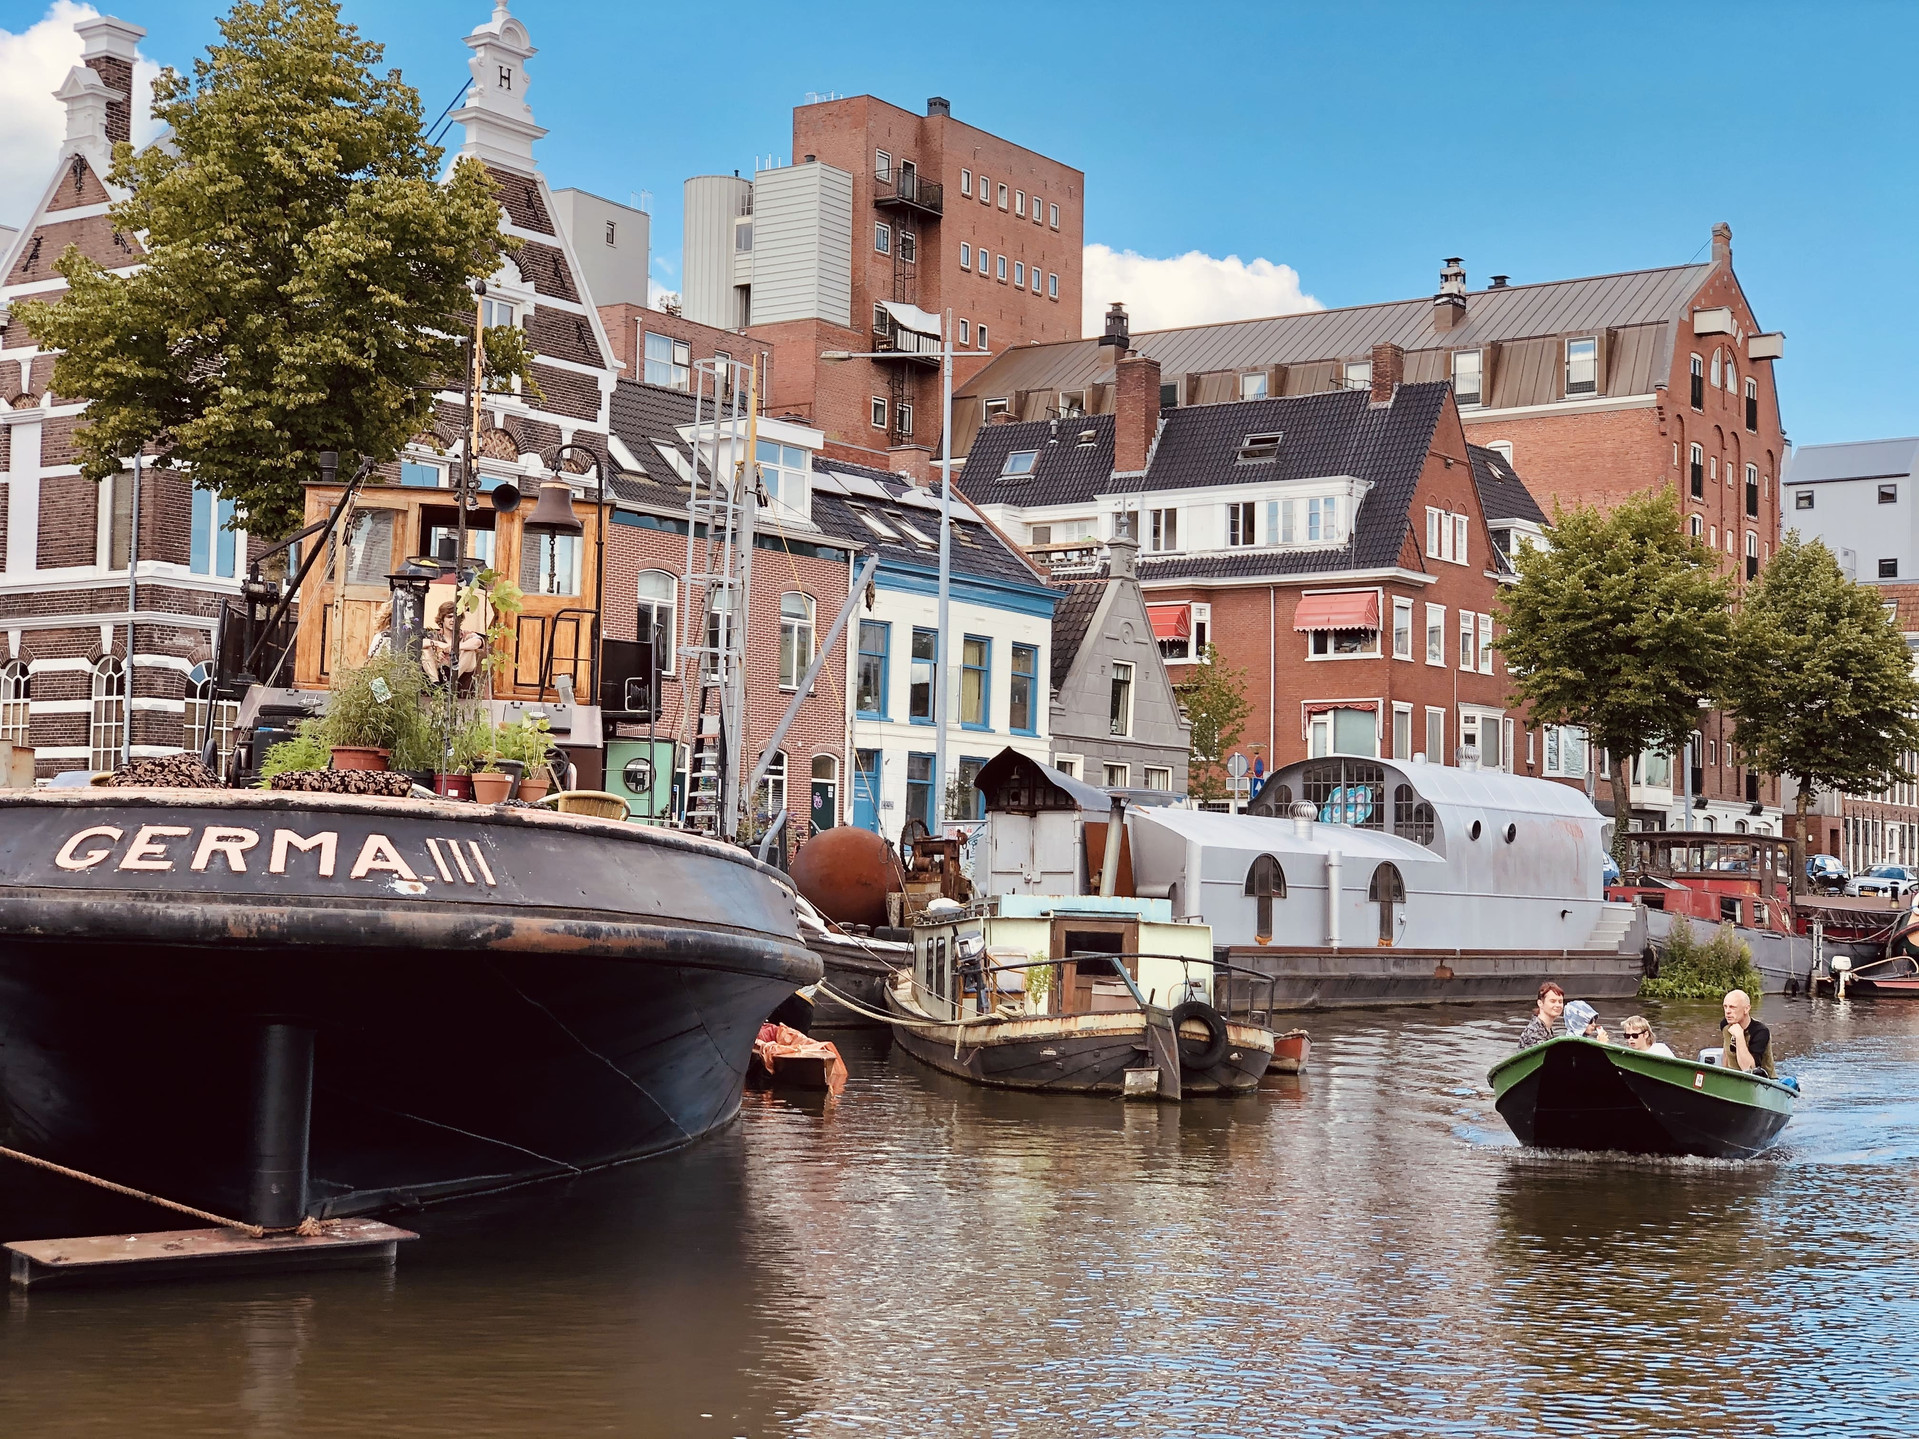 Boatviews of Groningen city-The Netherlands with Diepsloep